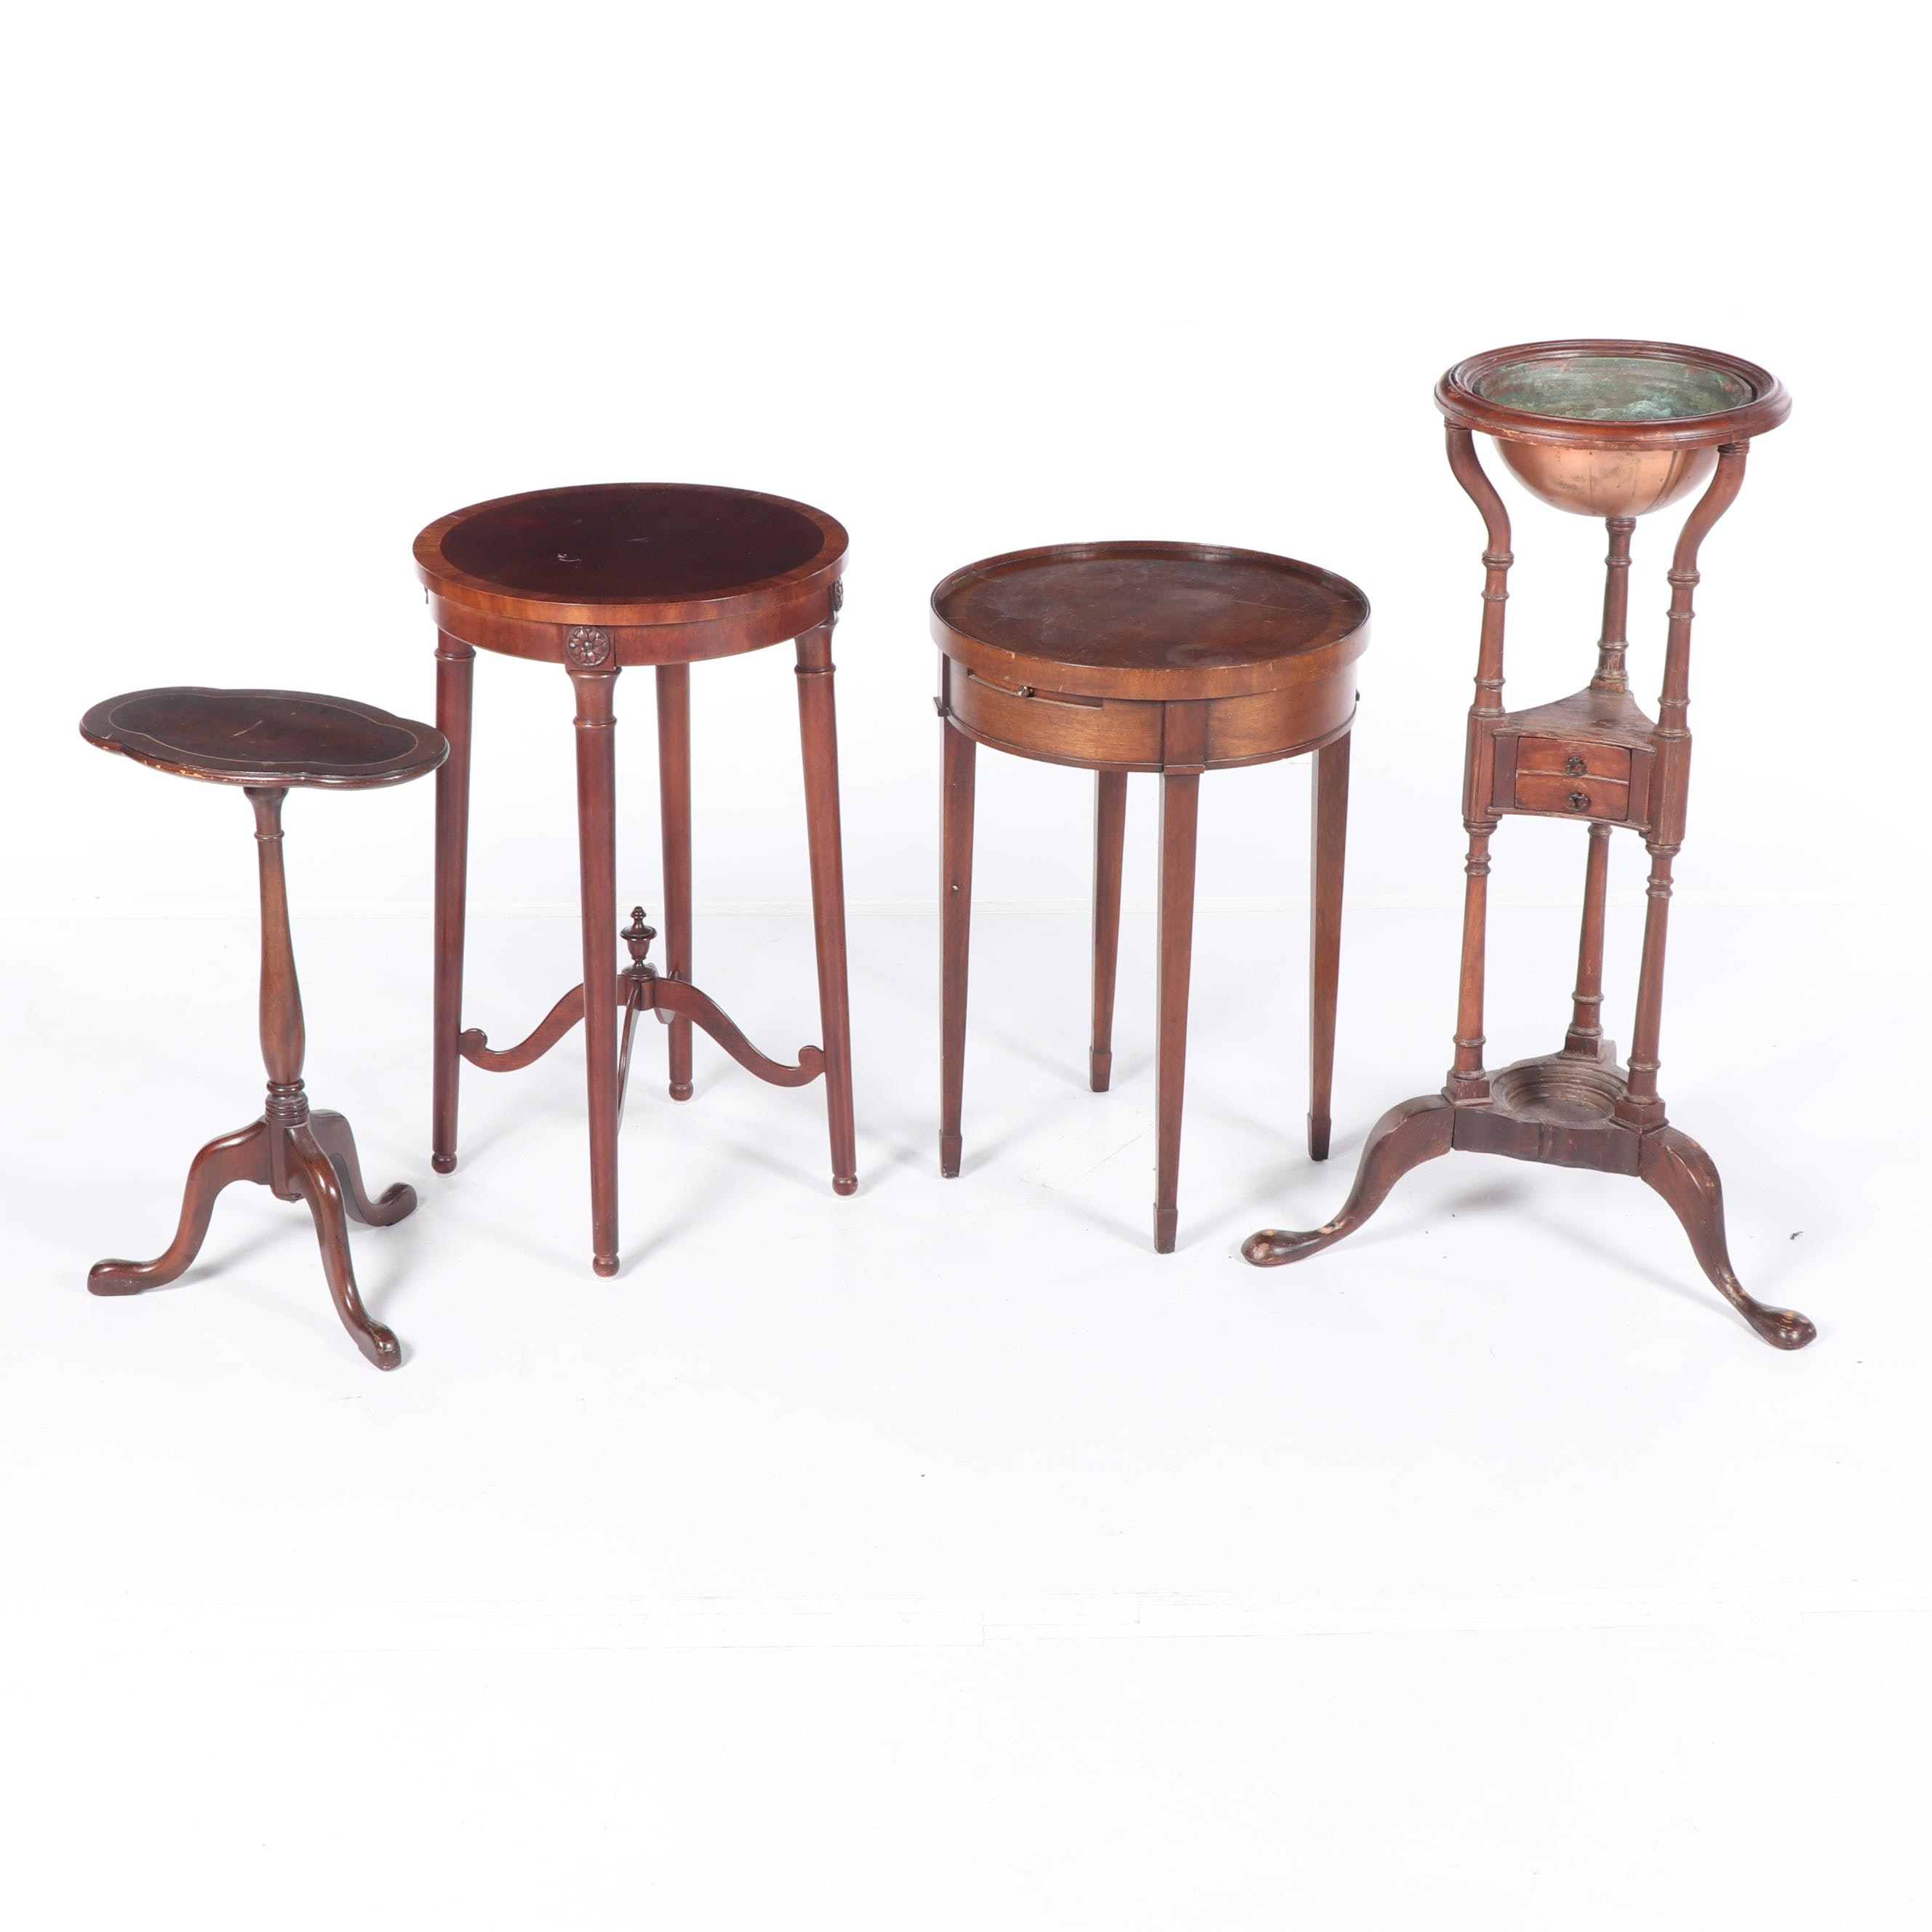 Federal Style Occasional Tables and Plant Stand, Early/Mid 20 Century